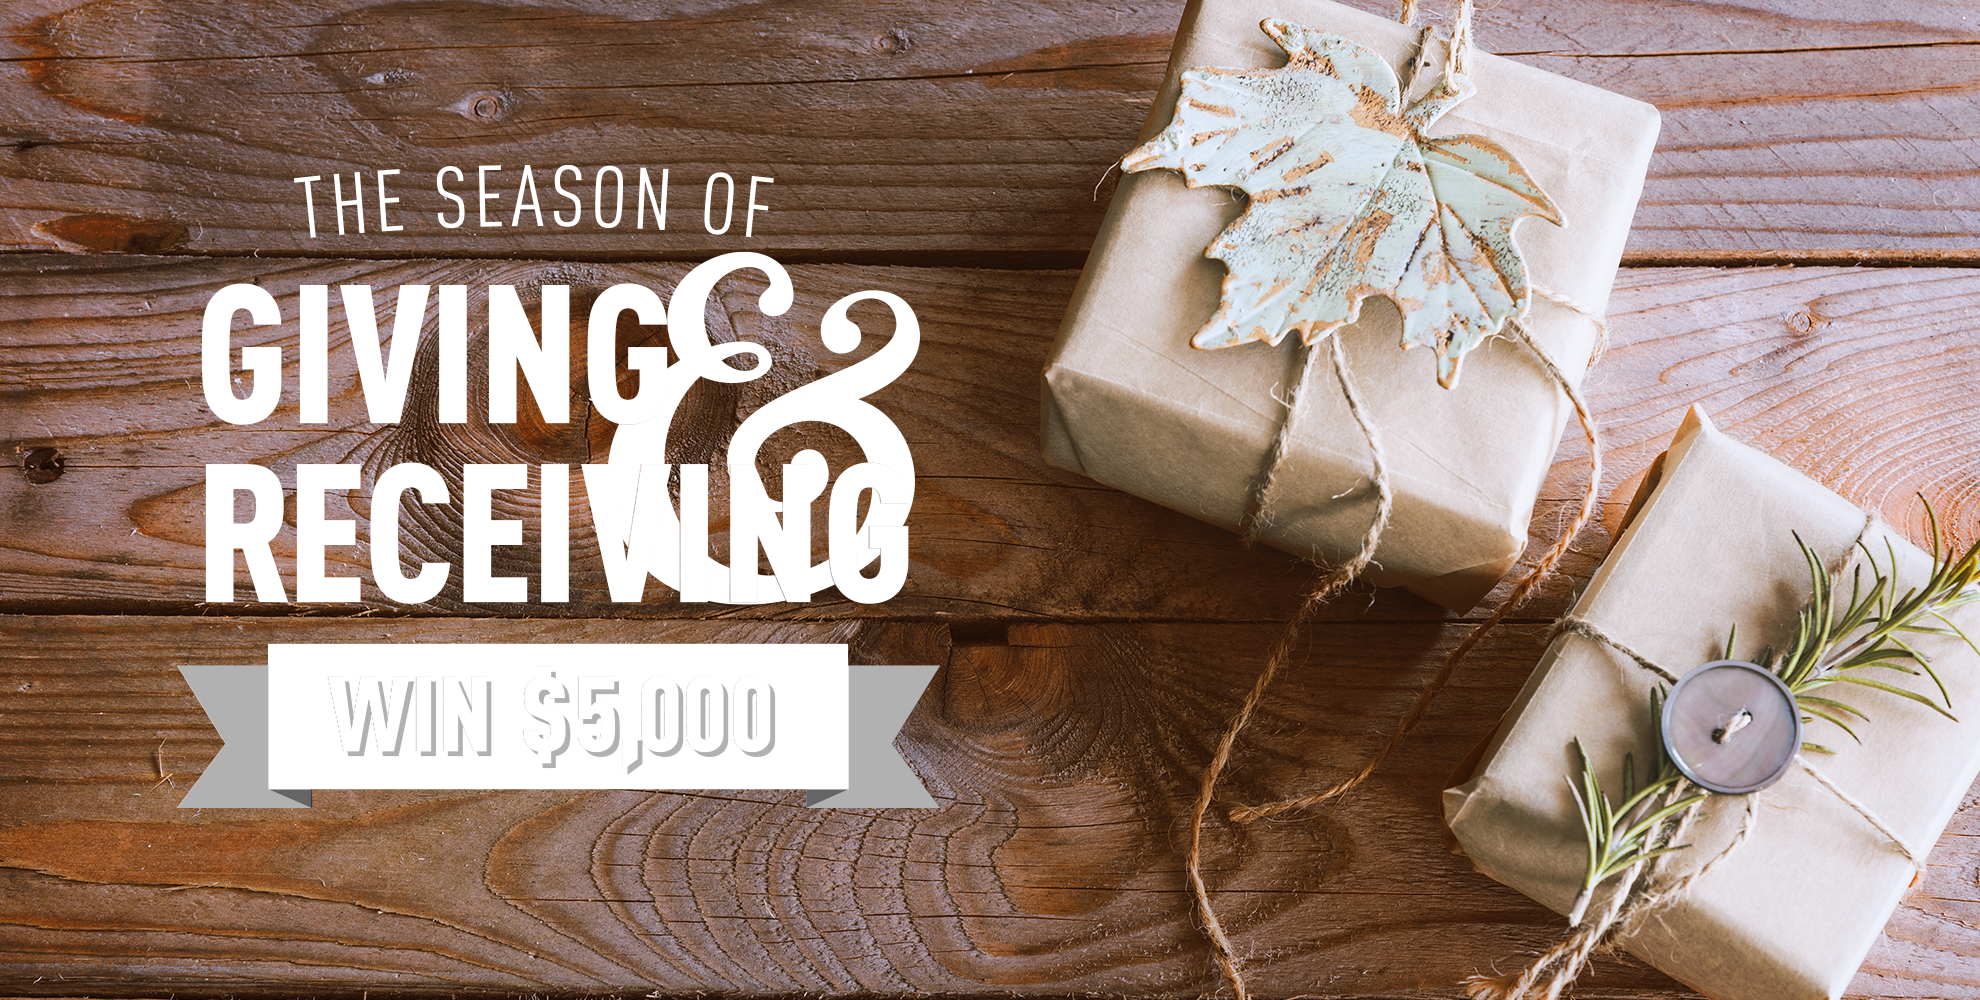 The season of giving & receiving